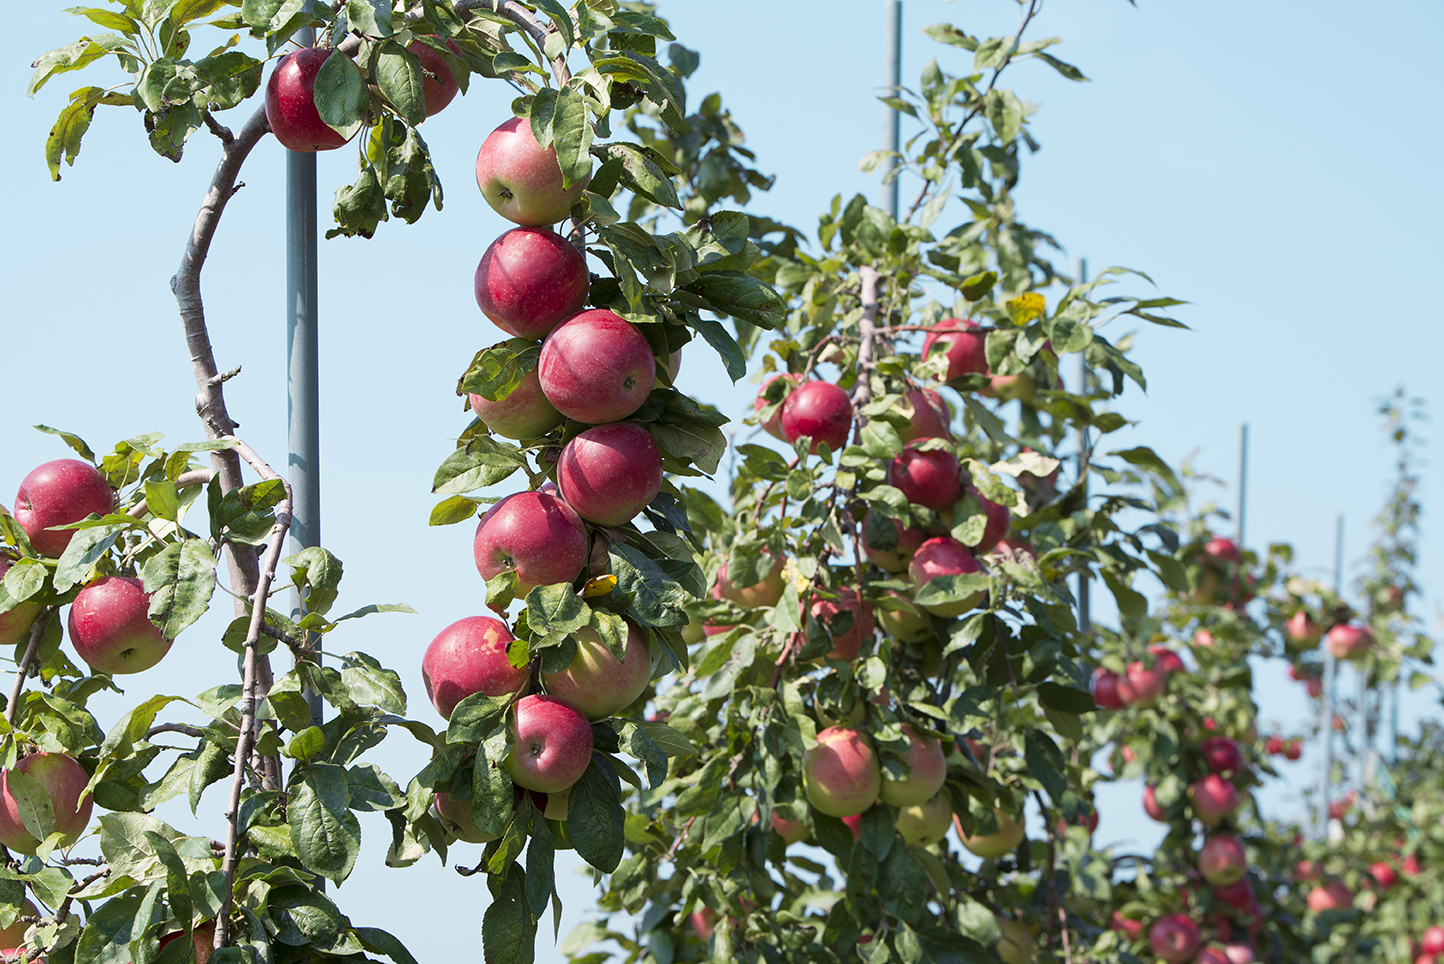 Sweet Berry Farm features dwarf apple trees that, instead of growing up and out, are trained to grow up poles.